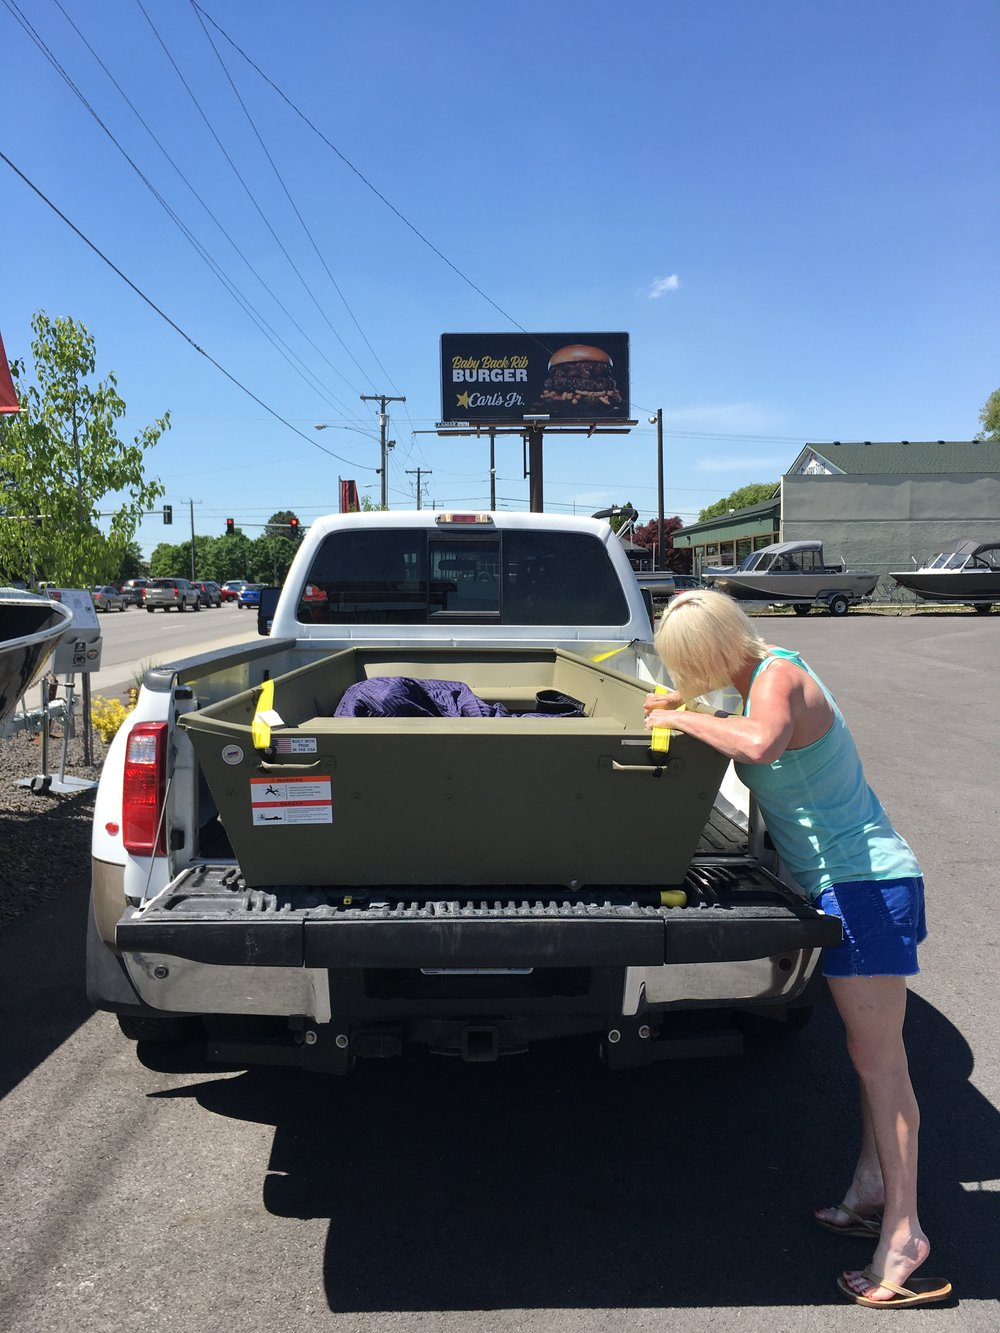 Bonus, it fits in the back of the truck! No trailer needed!